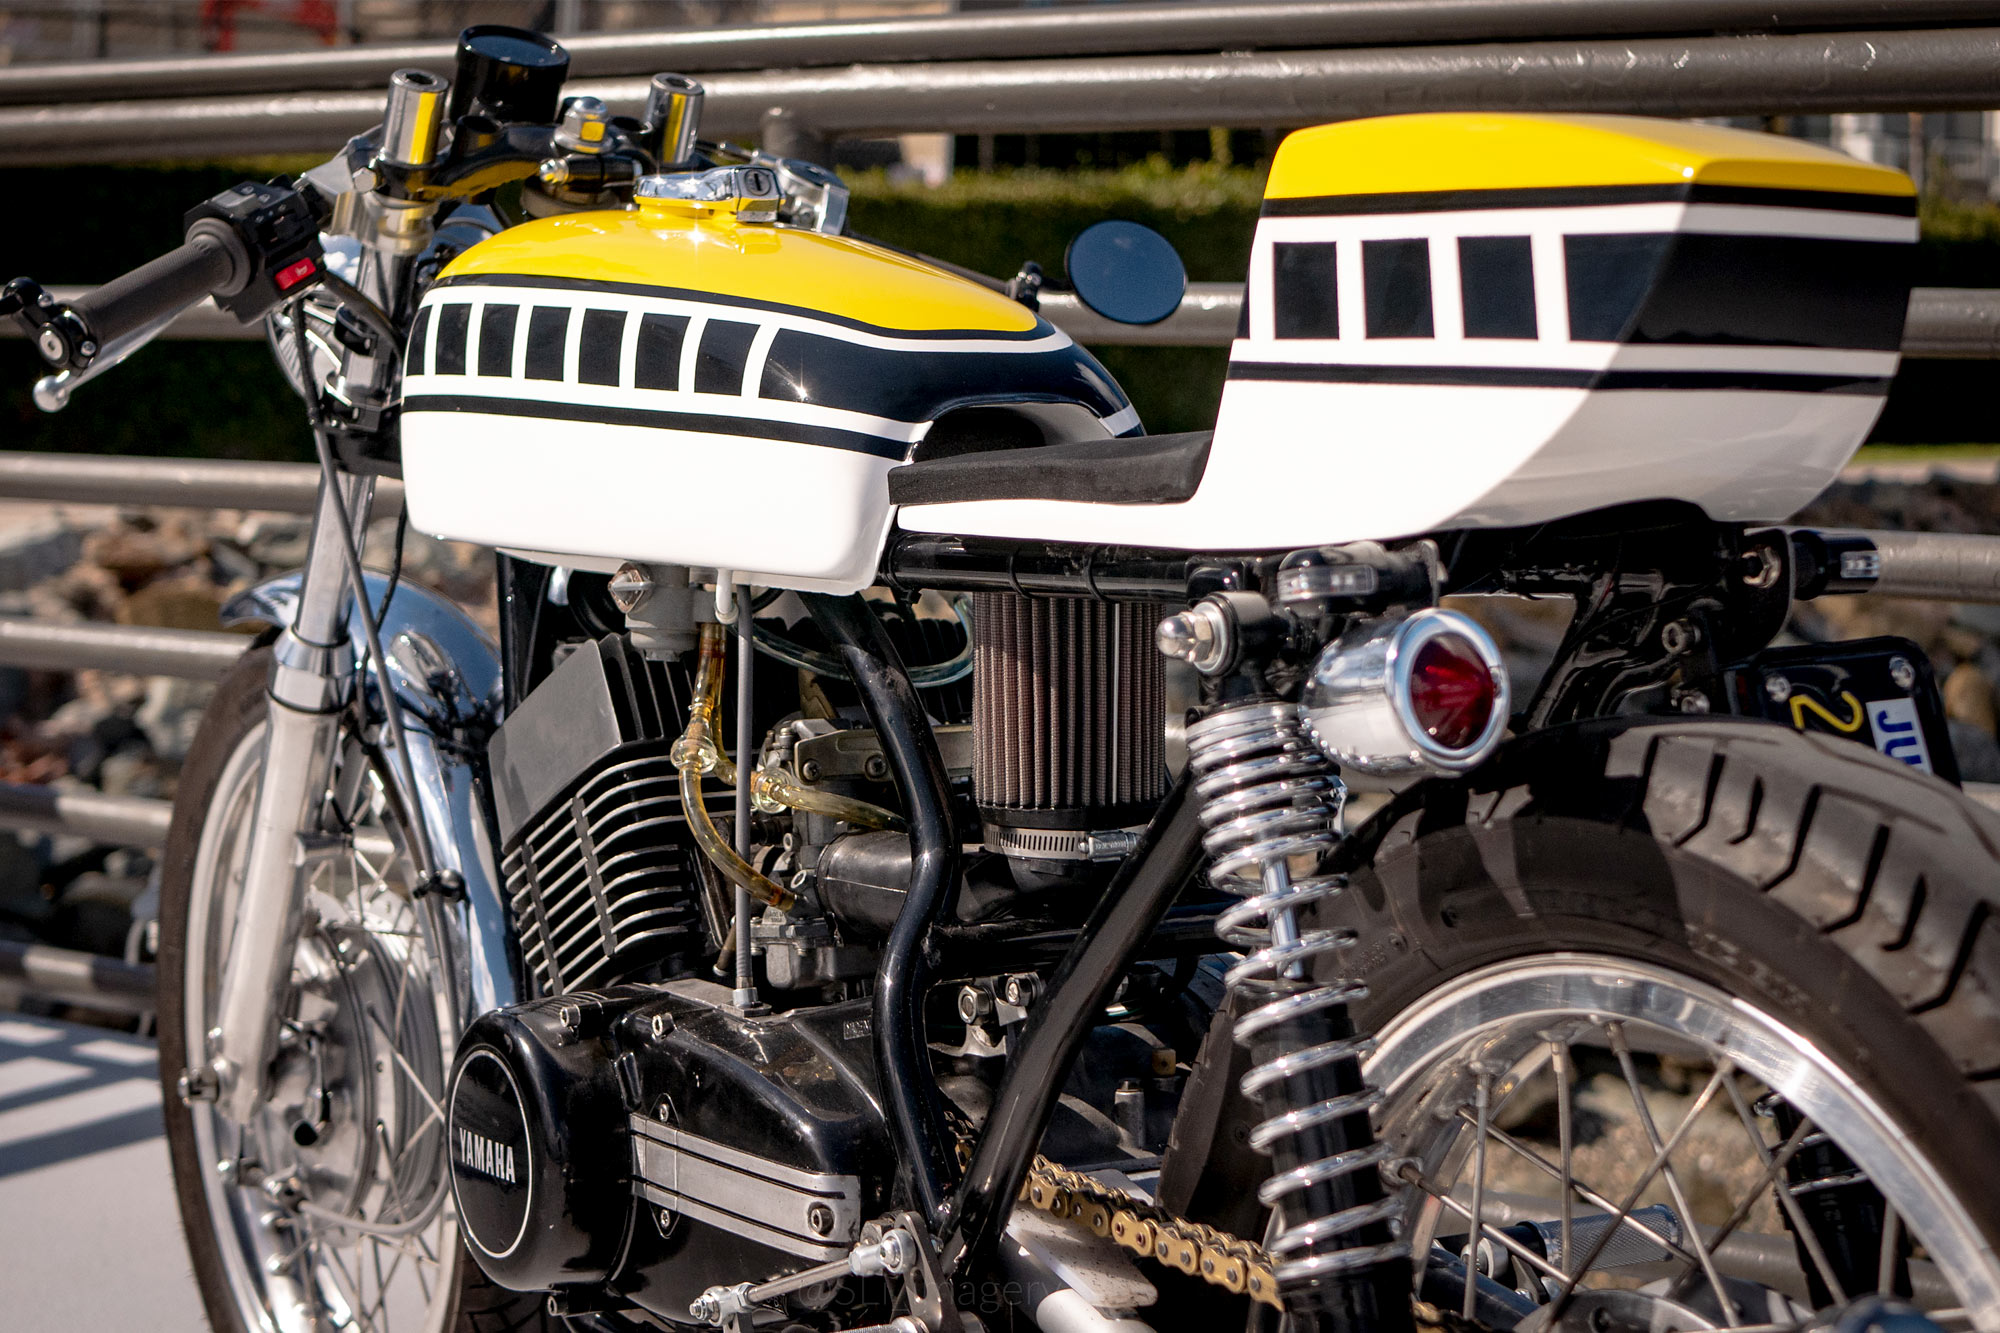 Pleasing Power Couple Zanutto Engineerings 71 Yamaha R5 Restomod Racer Wiring Cloud Oideiuggs Outletorg